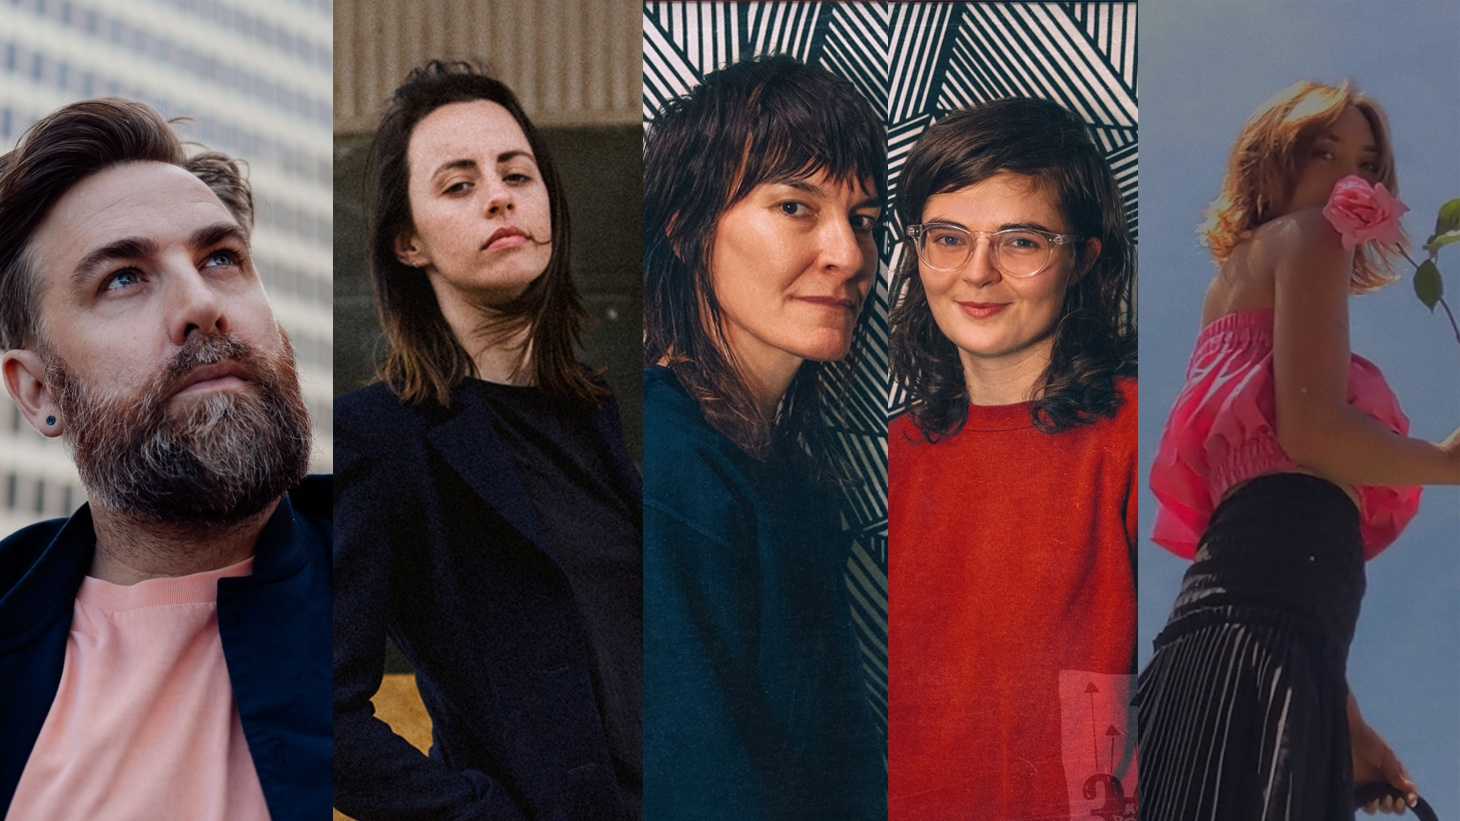 This week's Global Beat features the Australian sounds of Josh Pyke with Gordi, Jen Cloher and Hachiku, and Alice Skye.